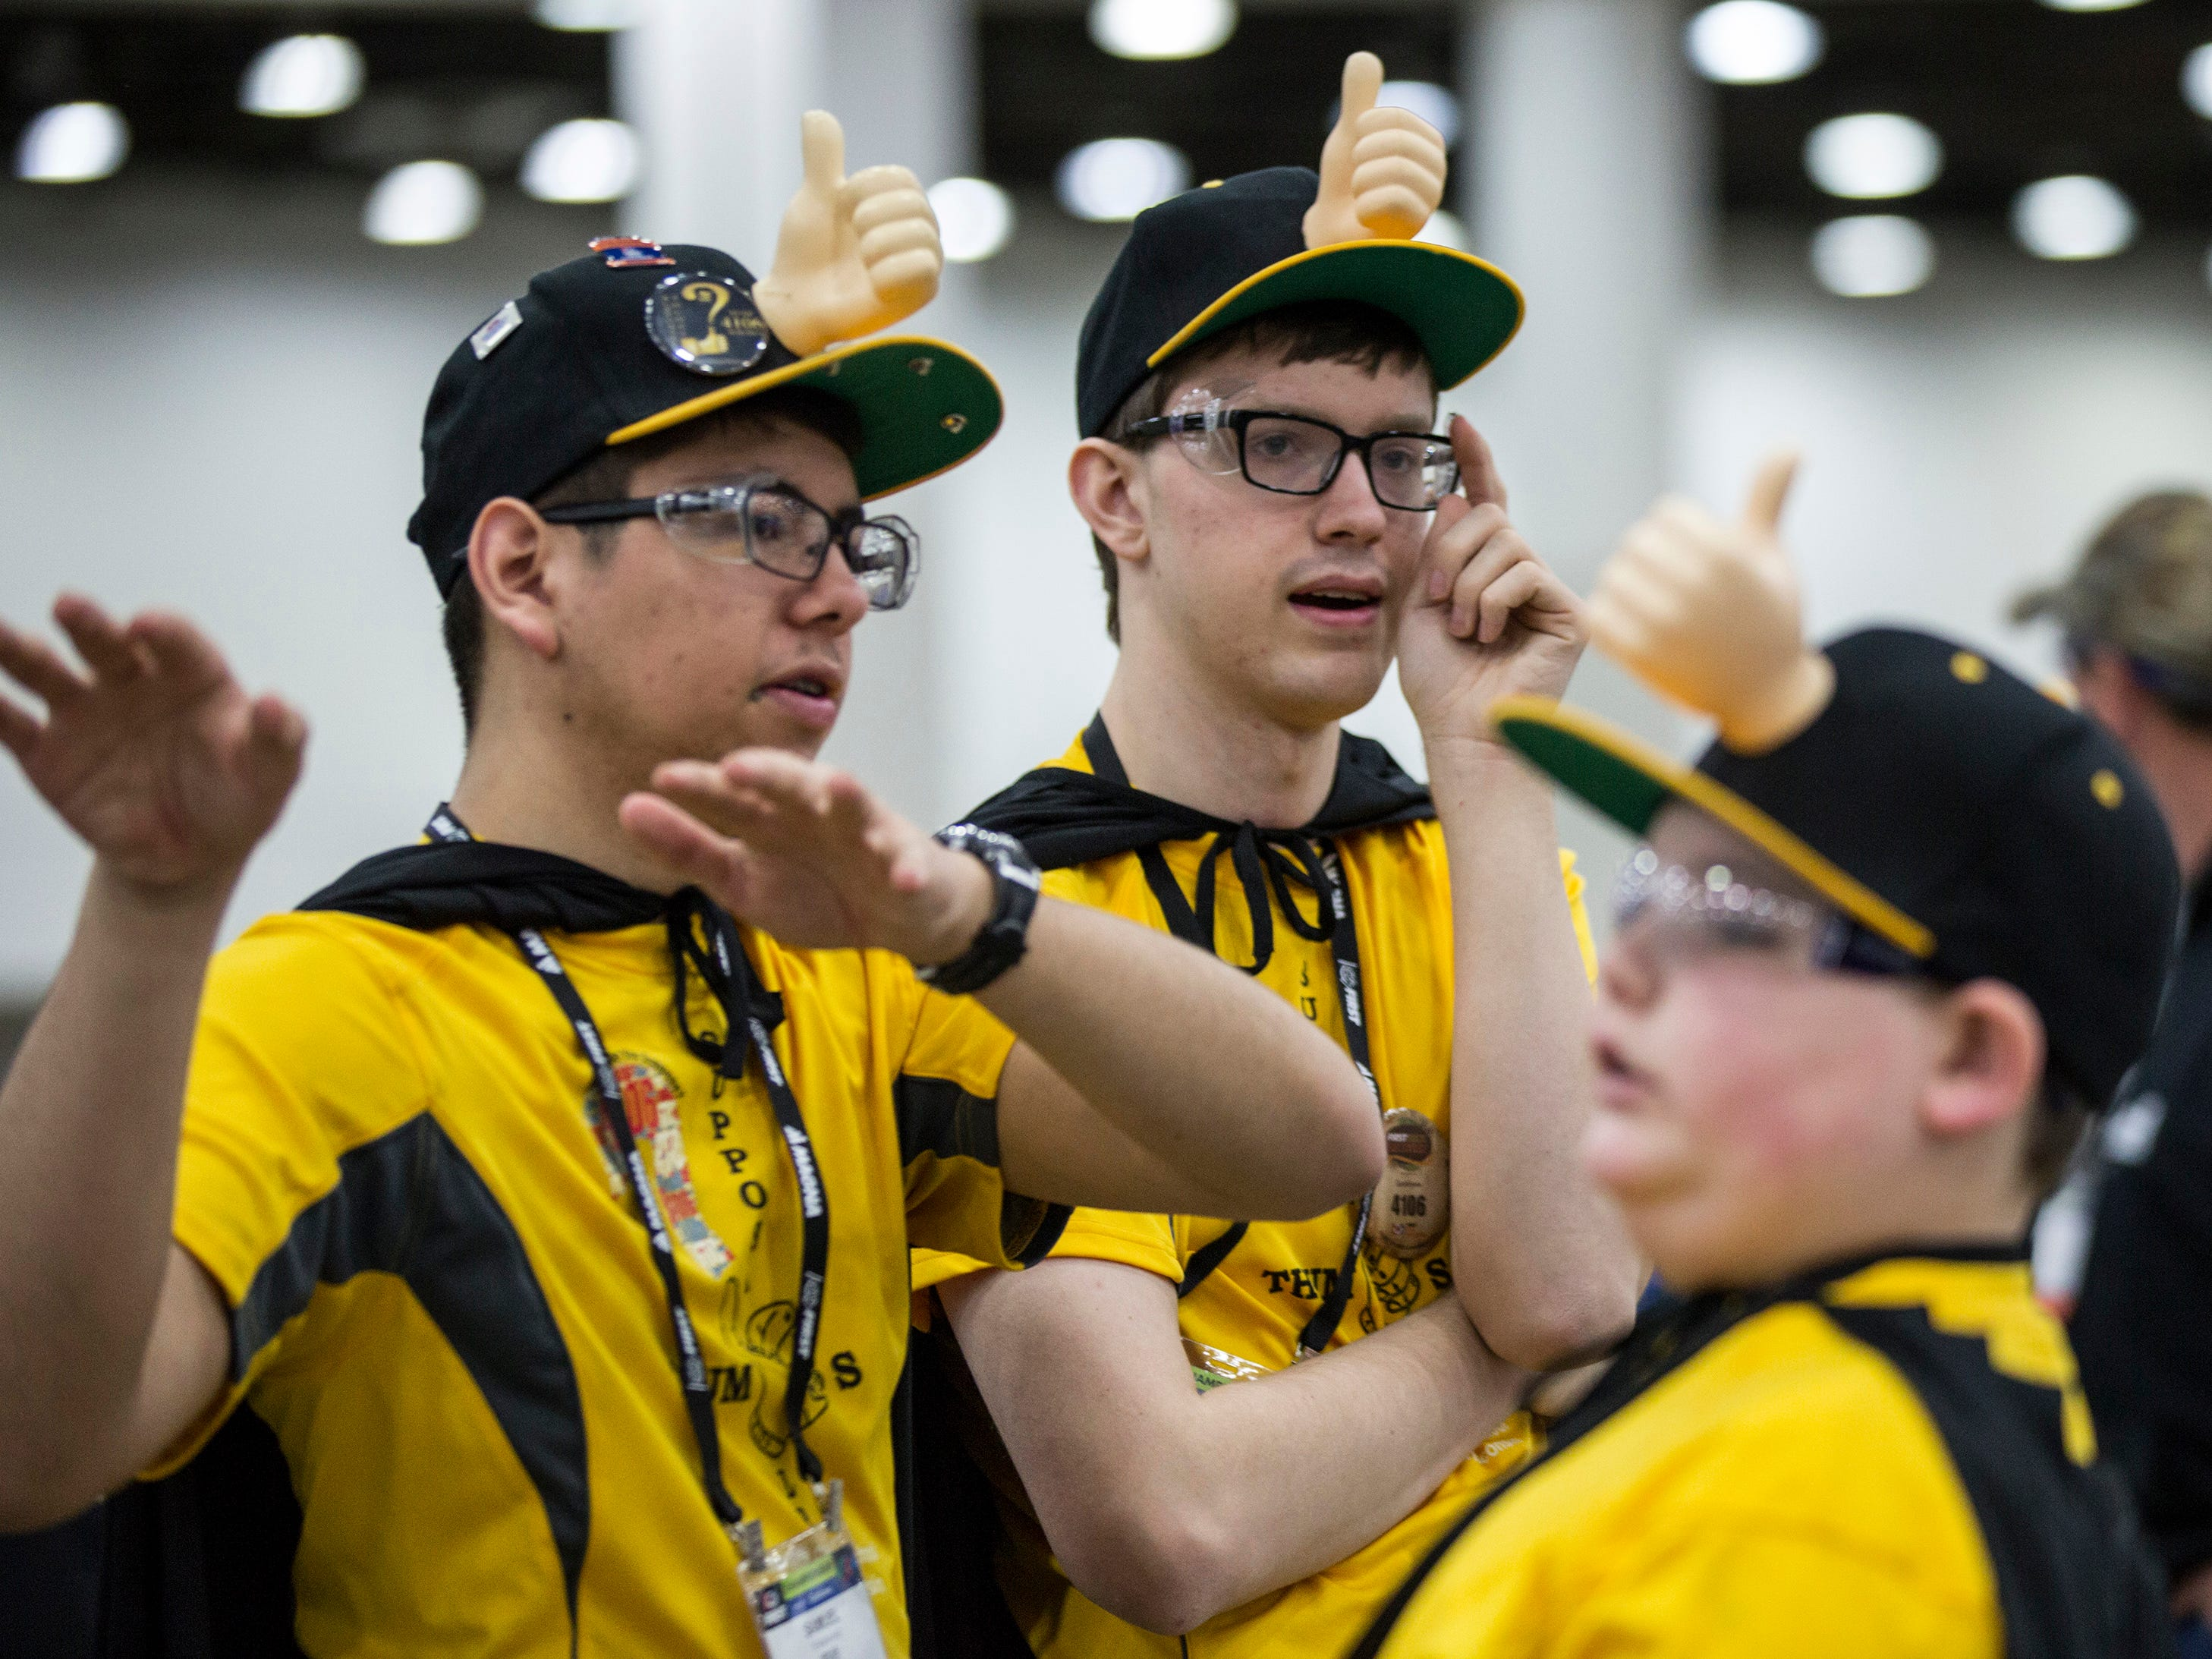 From left, Samuel Castro, 17, Tim Keep, 18 and Caden Holcomb, 12 all of New Berlin, WI, talk strategy for team Supposable Thumbs at the FIRST Robotics World Championship at Cobo Center, in Detroit, Mich., Wednesday, April 25, 2018.